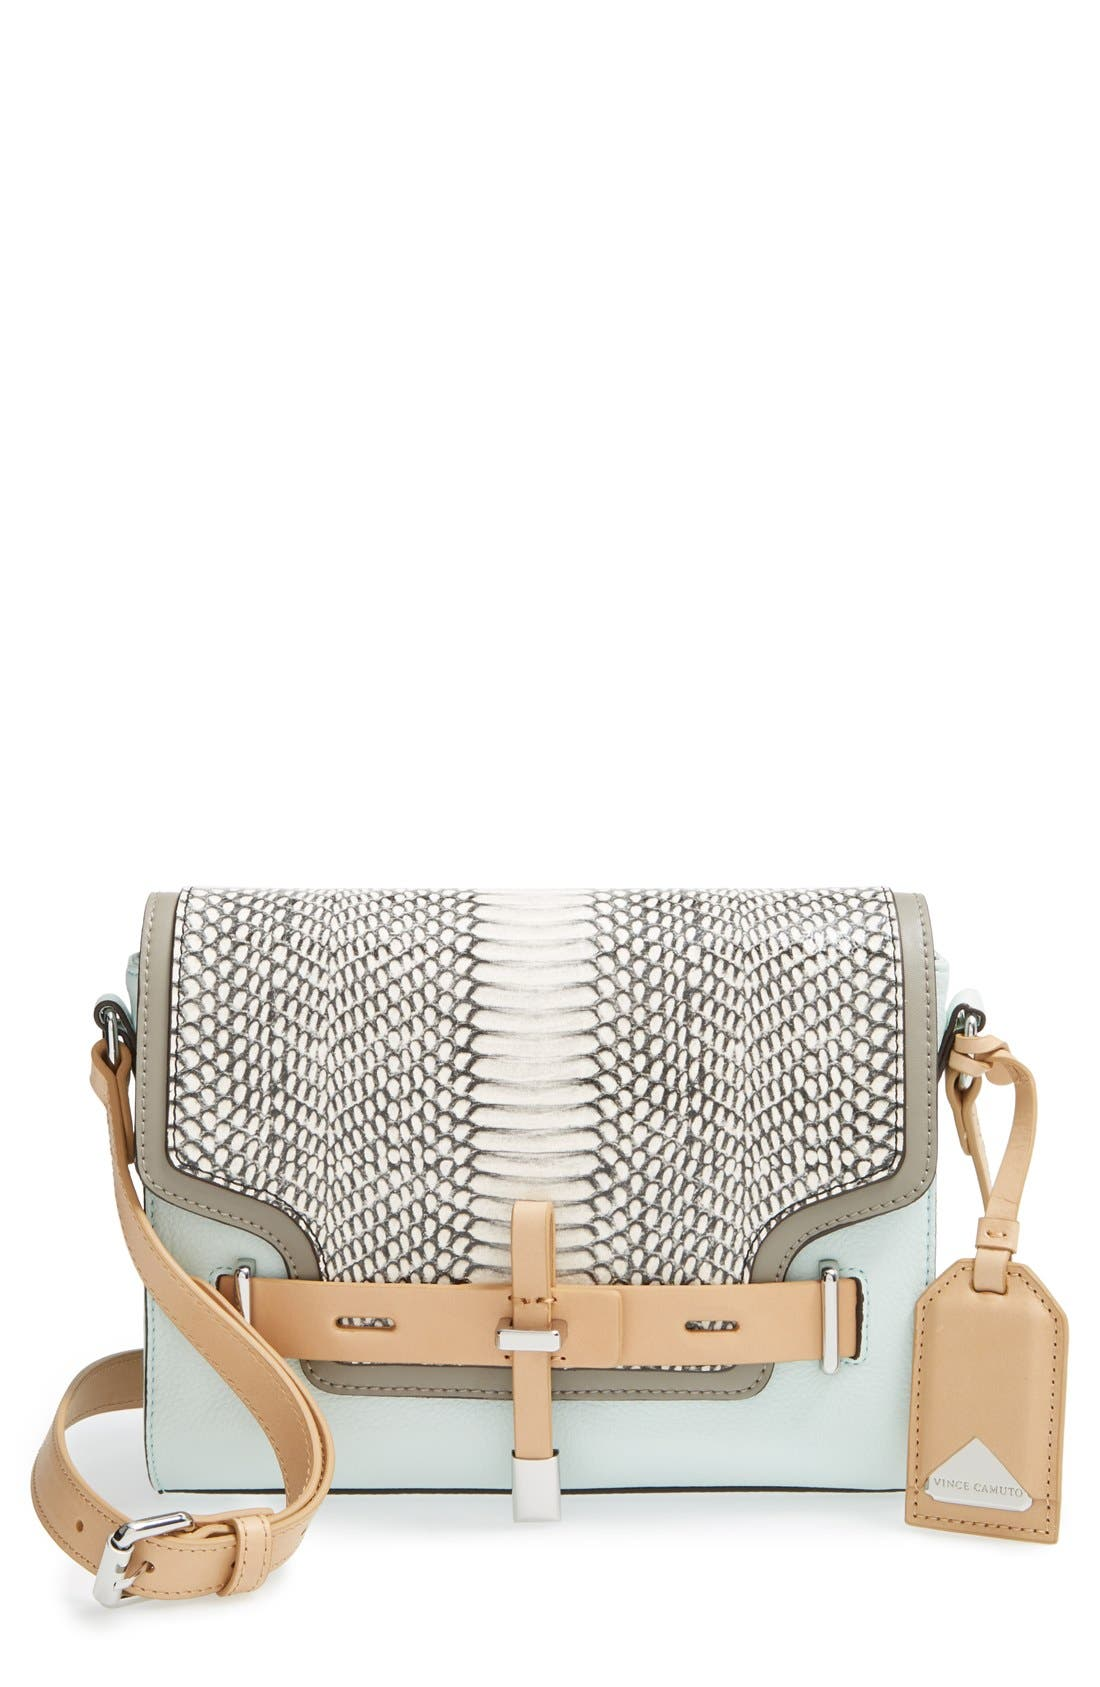 Alternate Image 1 Selected - Vince Camuto 'Max' Leather Crossbody Bag